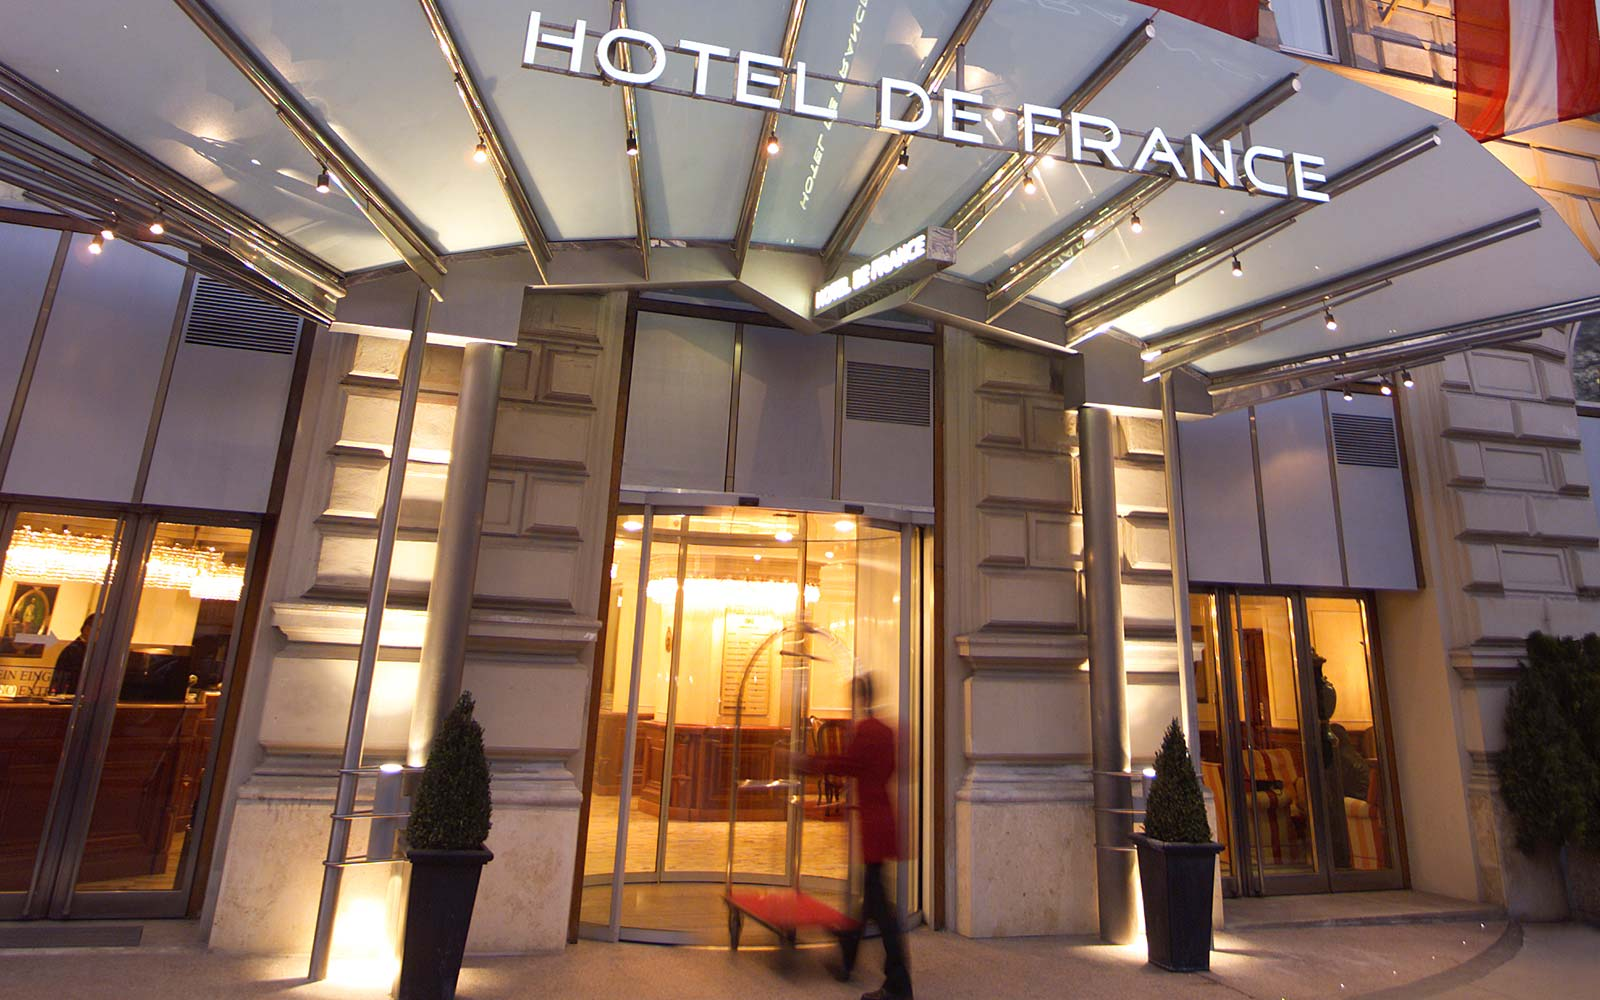 Conference hotel de france vienna gerstner hotels for Hotel de reve france